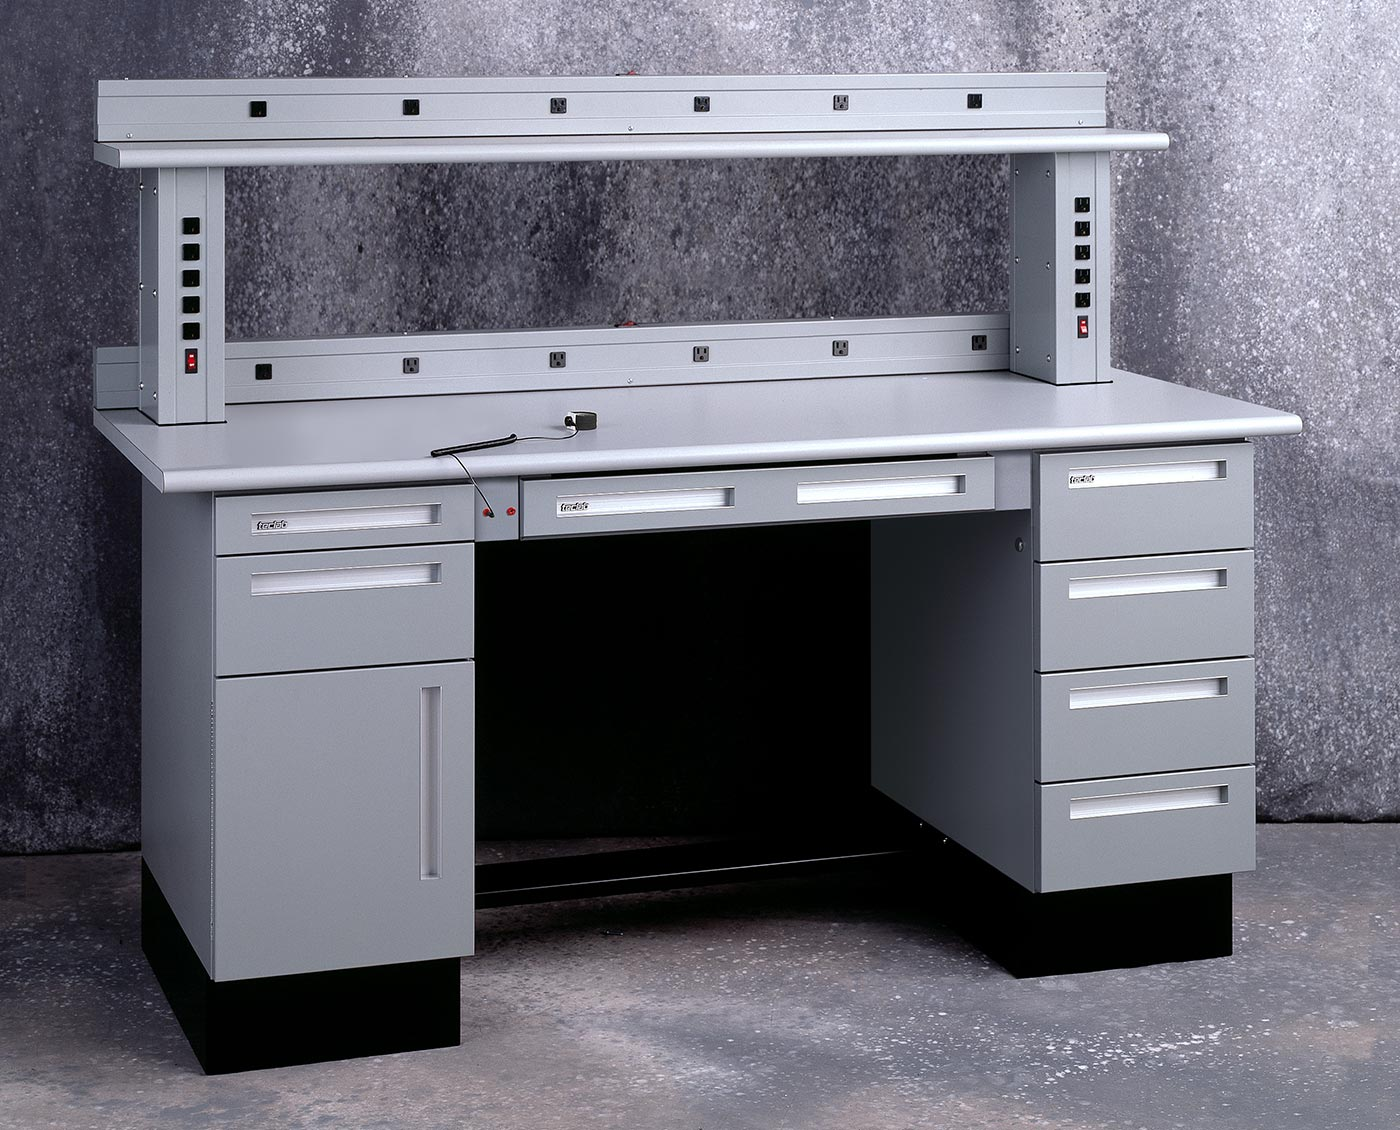 Wondrous Workbench Esd Options From Teclab Caraccident5 Cool Chair Designs And Ideas Caraccident5Info